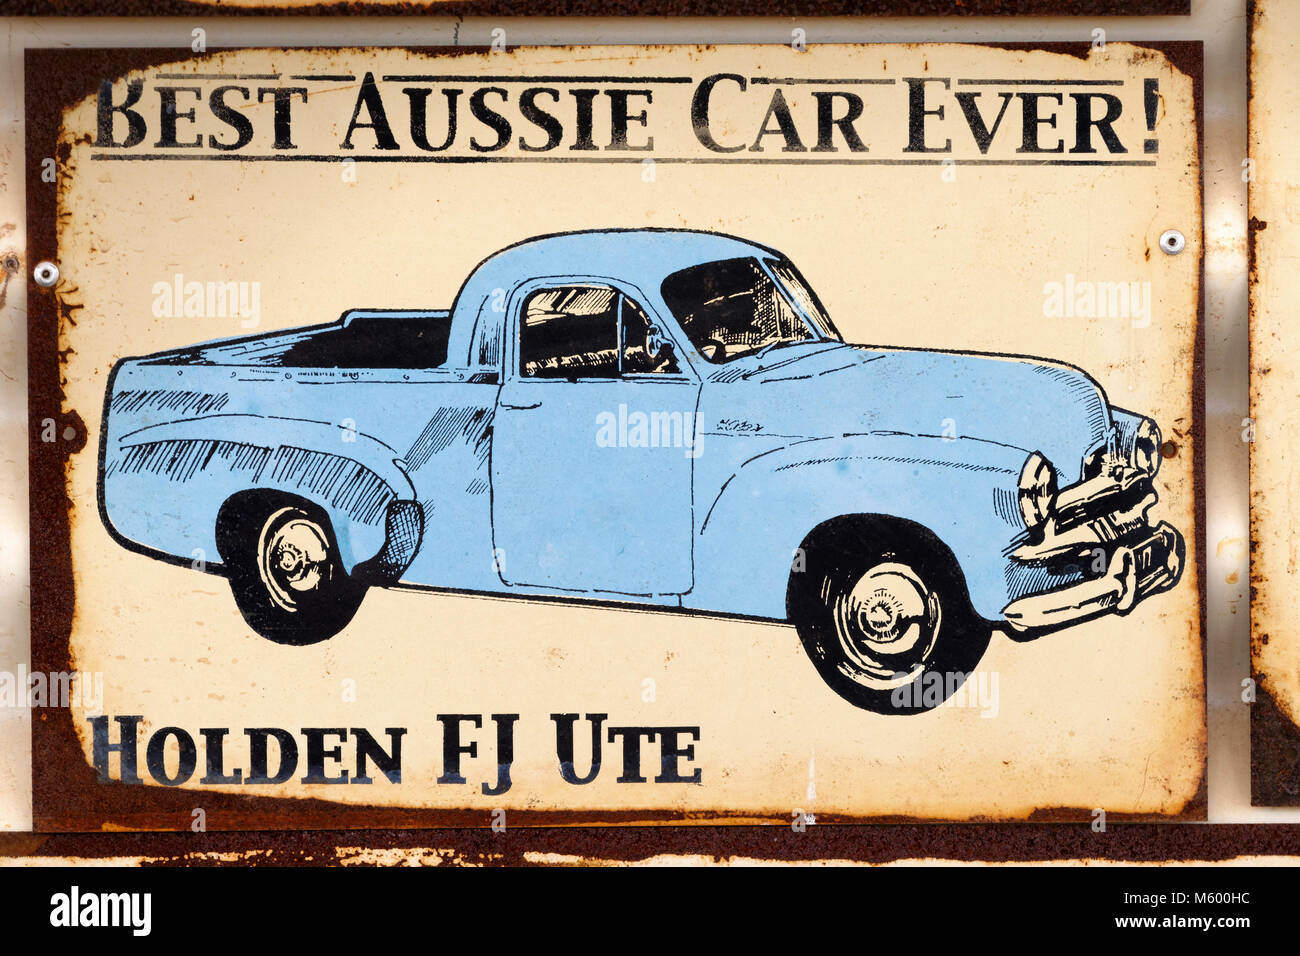 Old holden stock photos old holden stock images alamy for General motors stock history